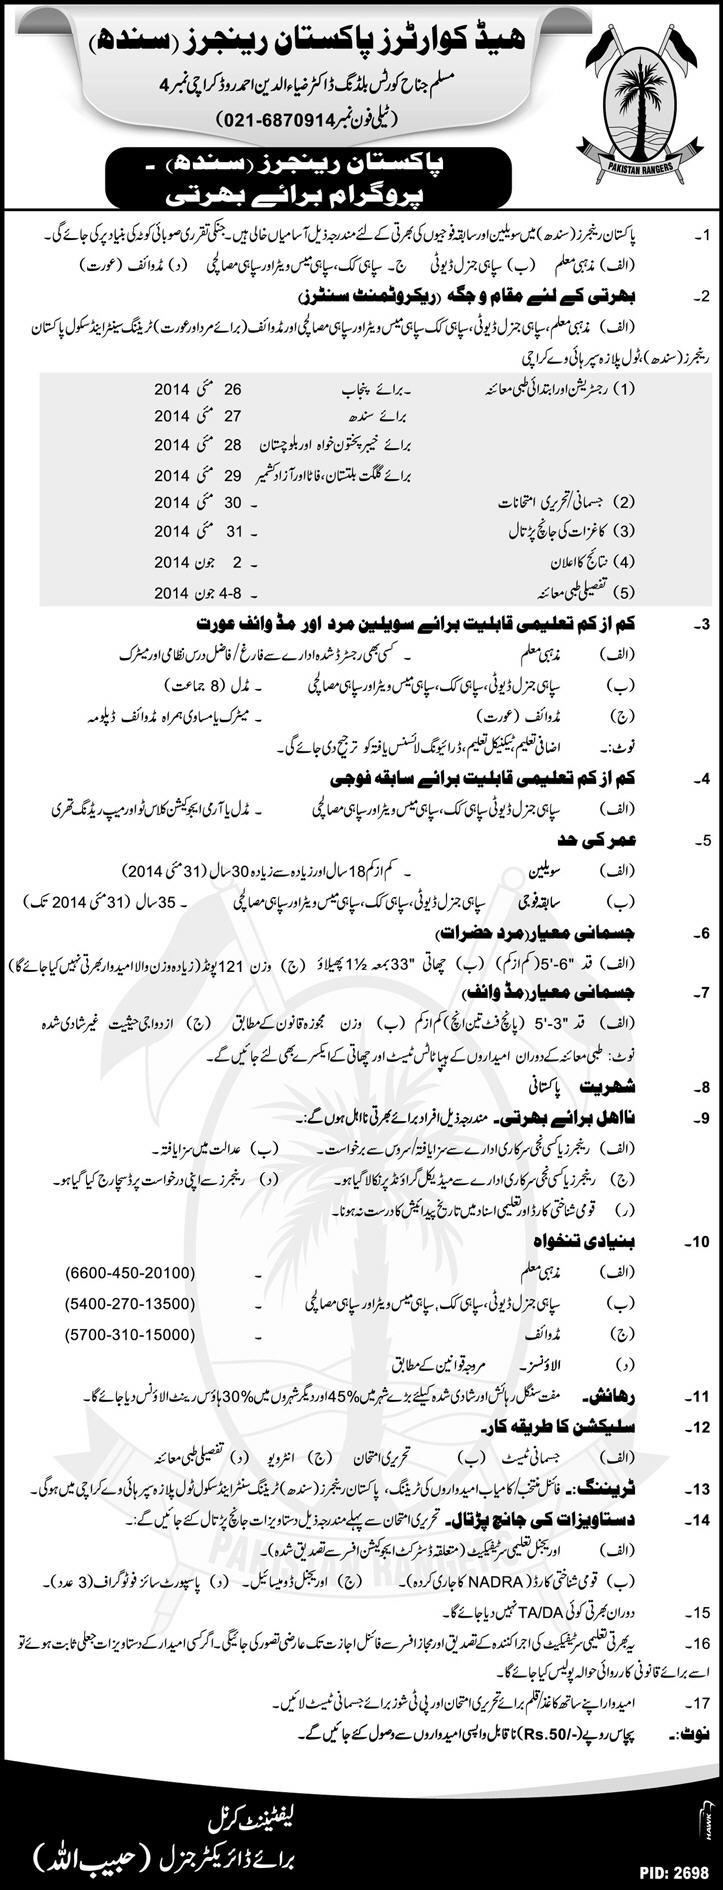 Pakistan Rangers Sindh Soldier Jobs 2014